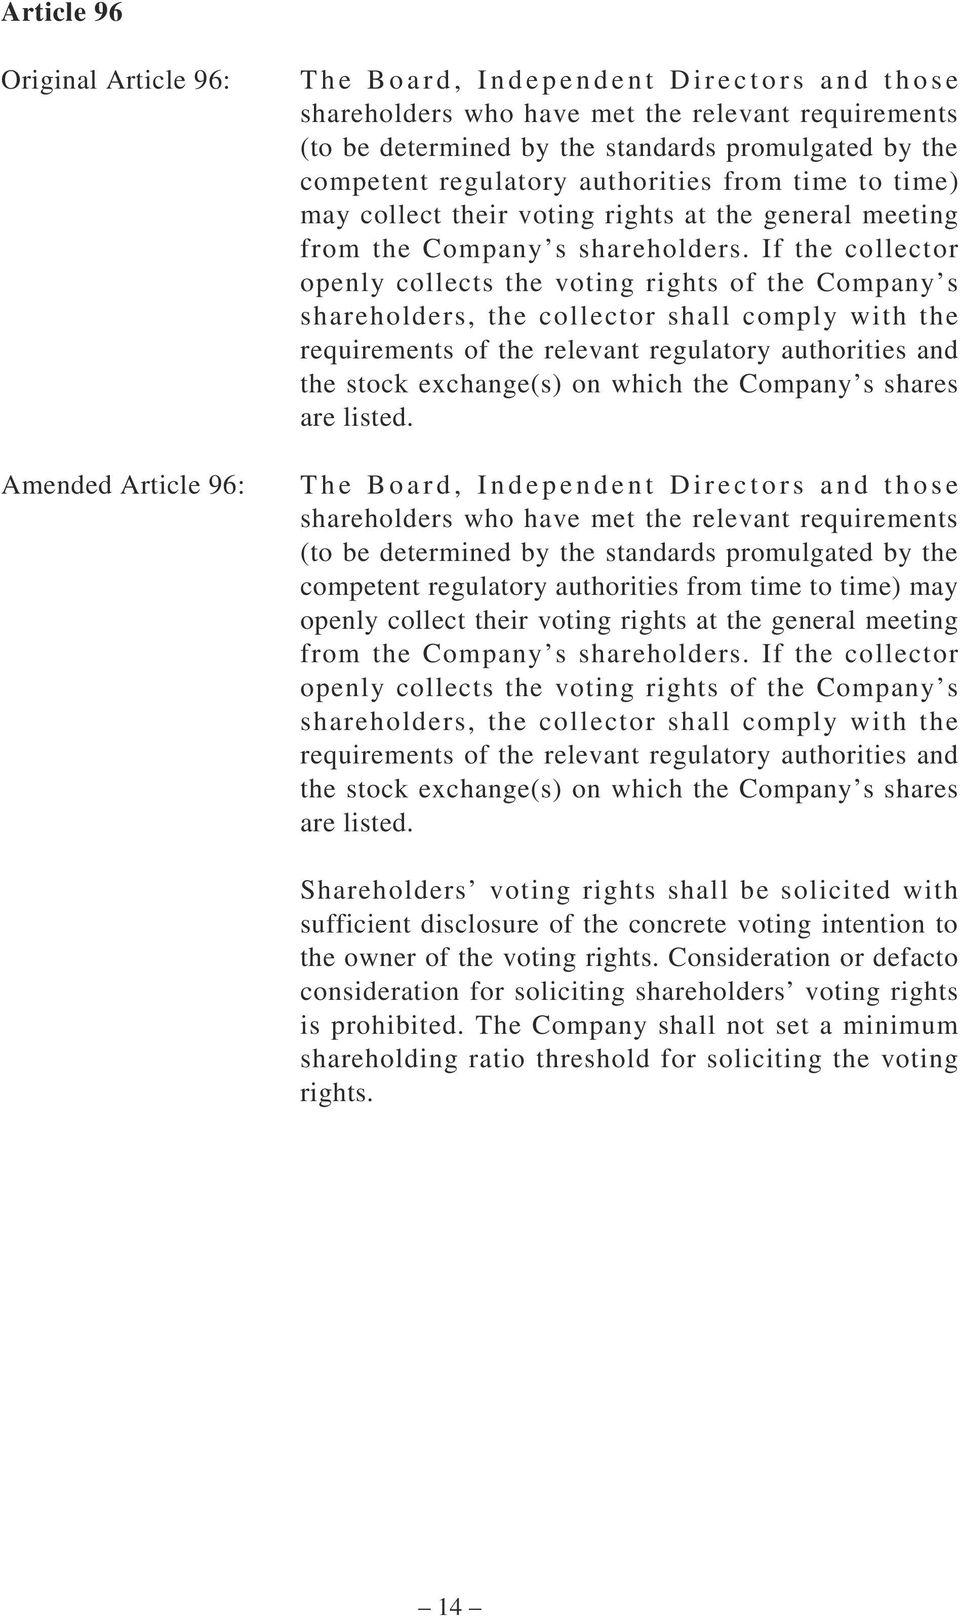 If the collector openly collects the voting rights of the Company s shareholders, the collector shall comply with the requirements of the relevant regulatory authorities and the stock exchange(s) on